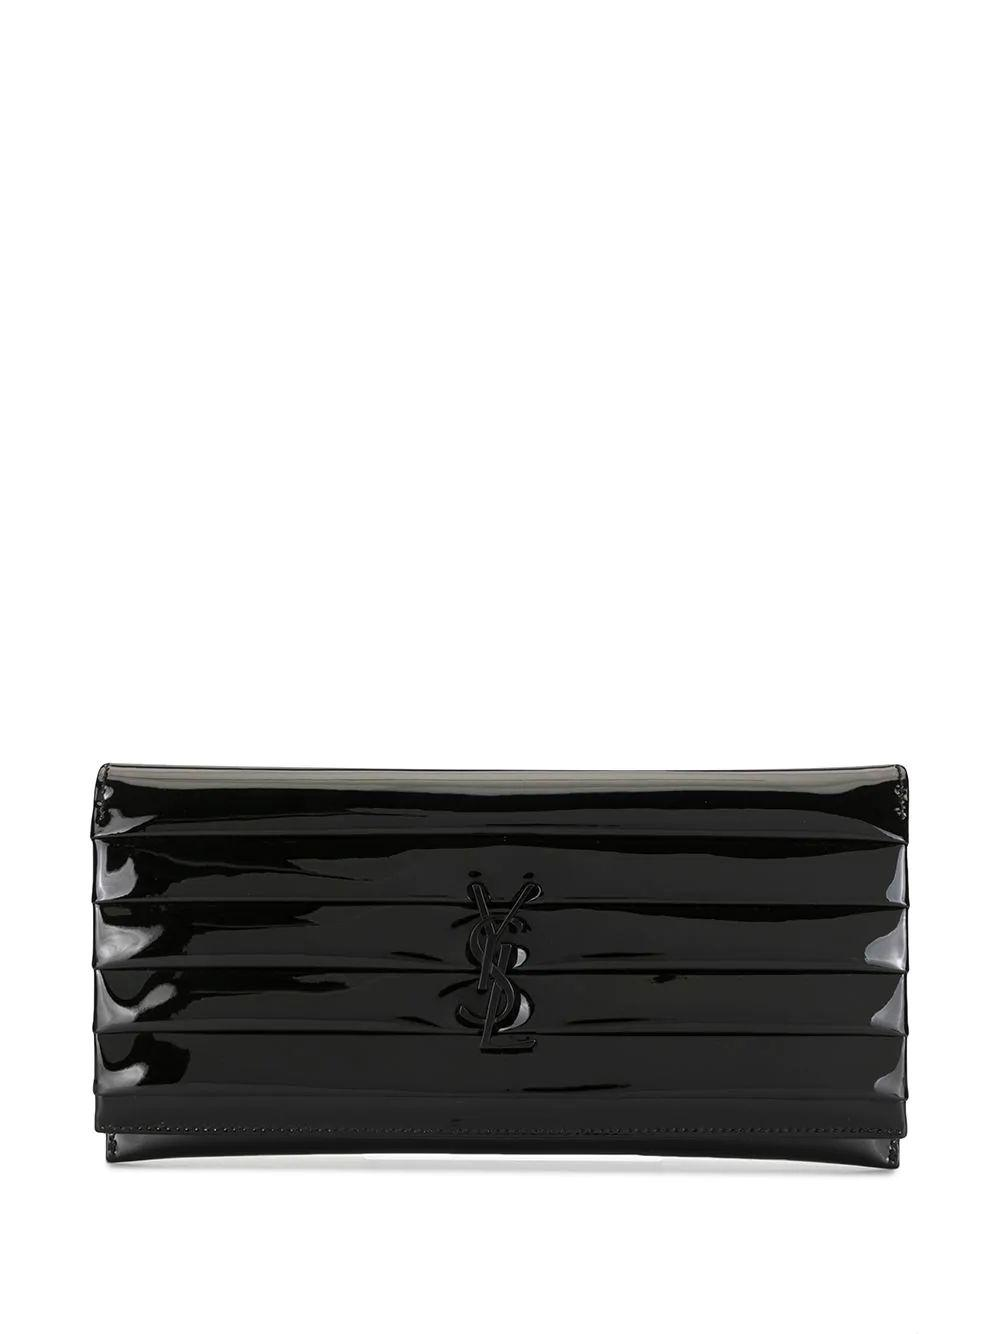 Small Patent Clutch Item # 593168B870U